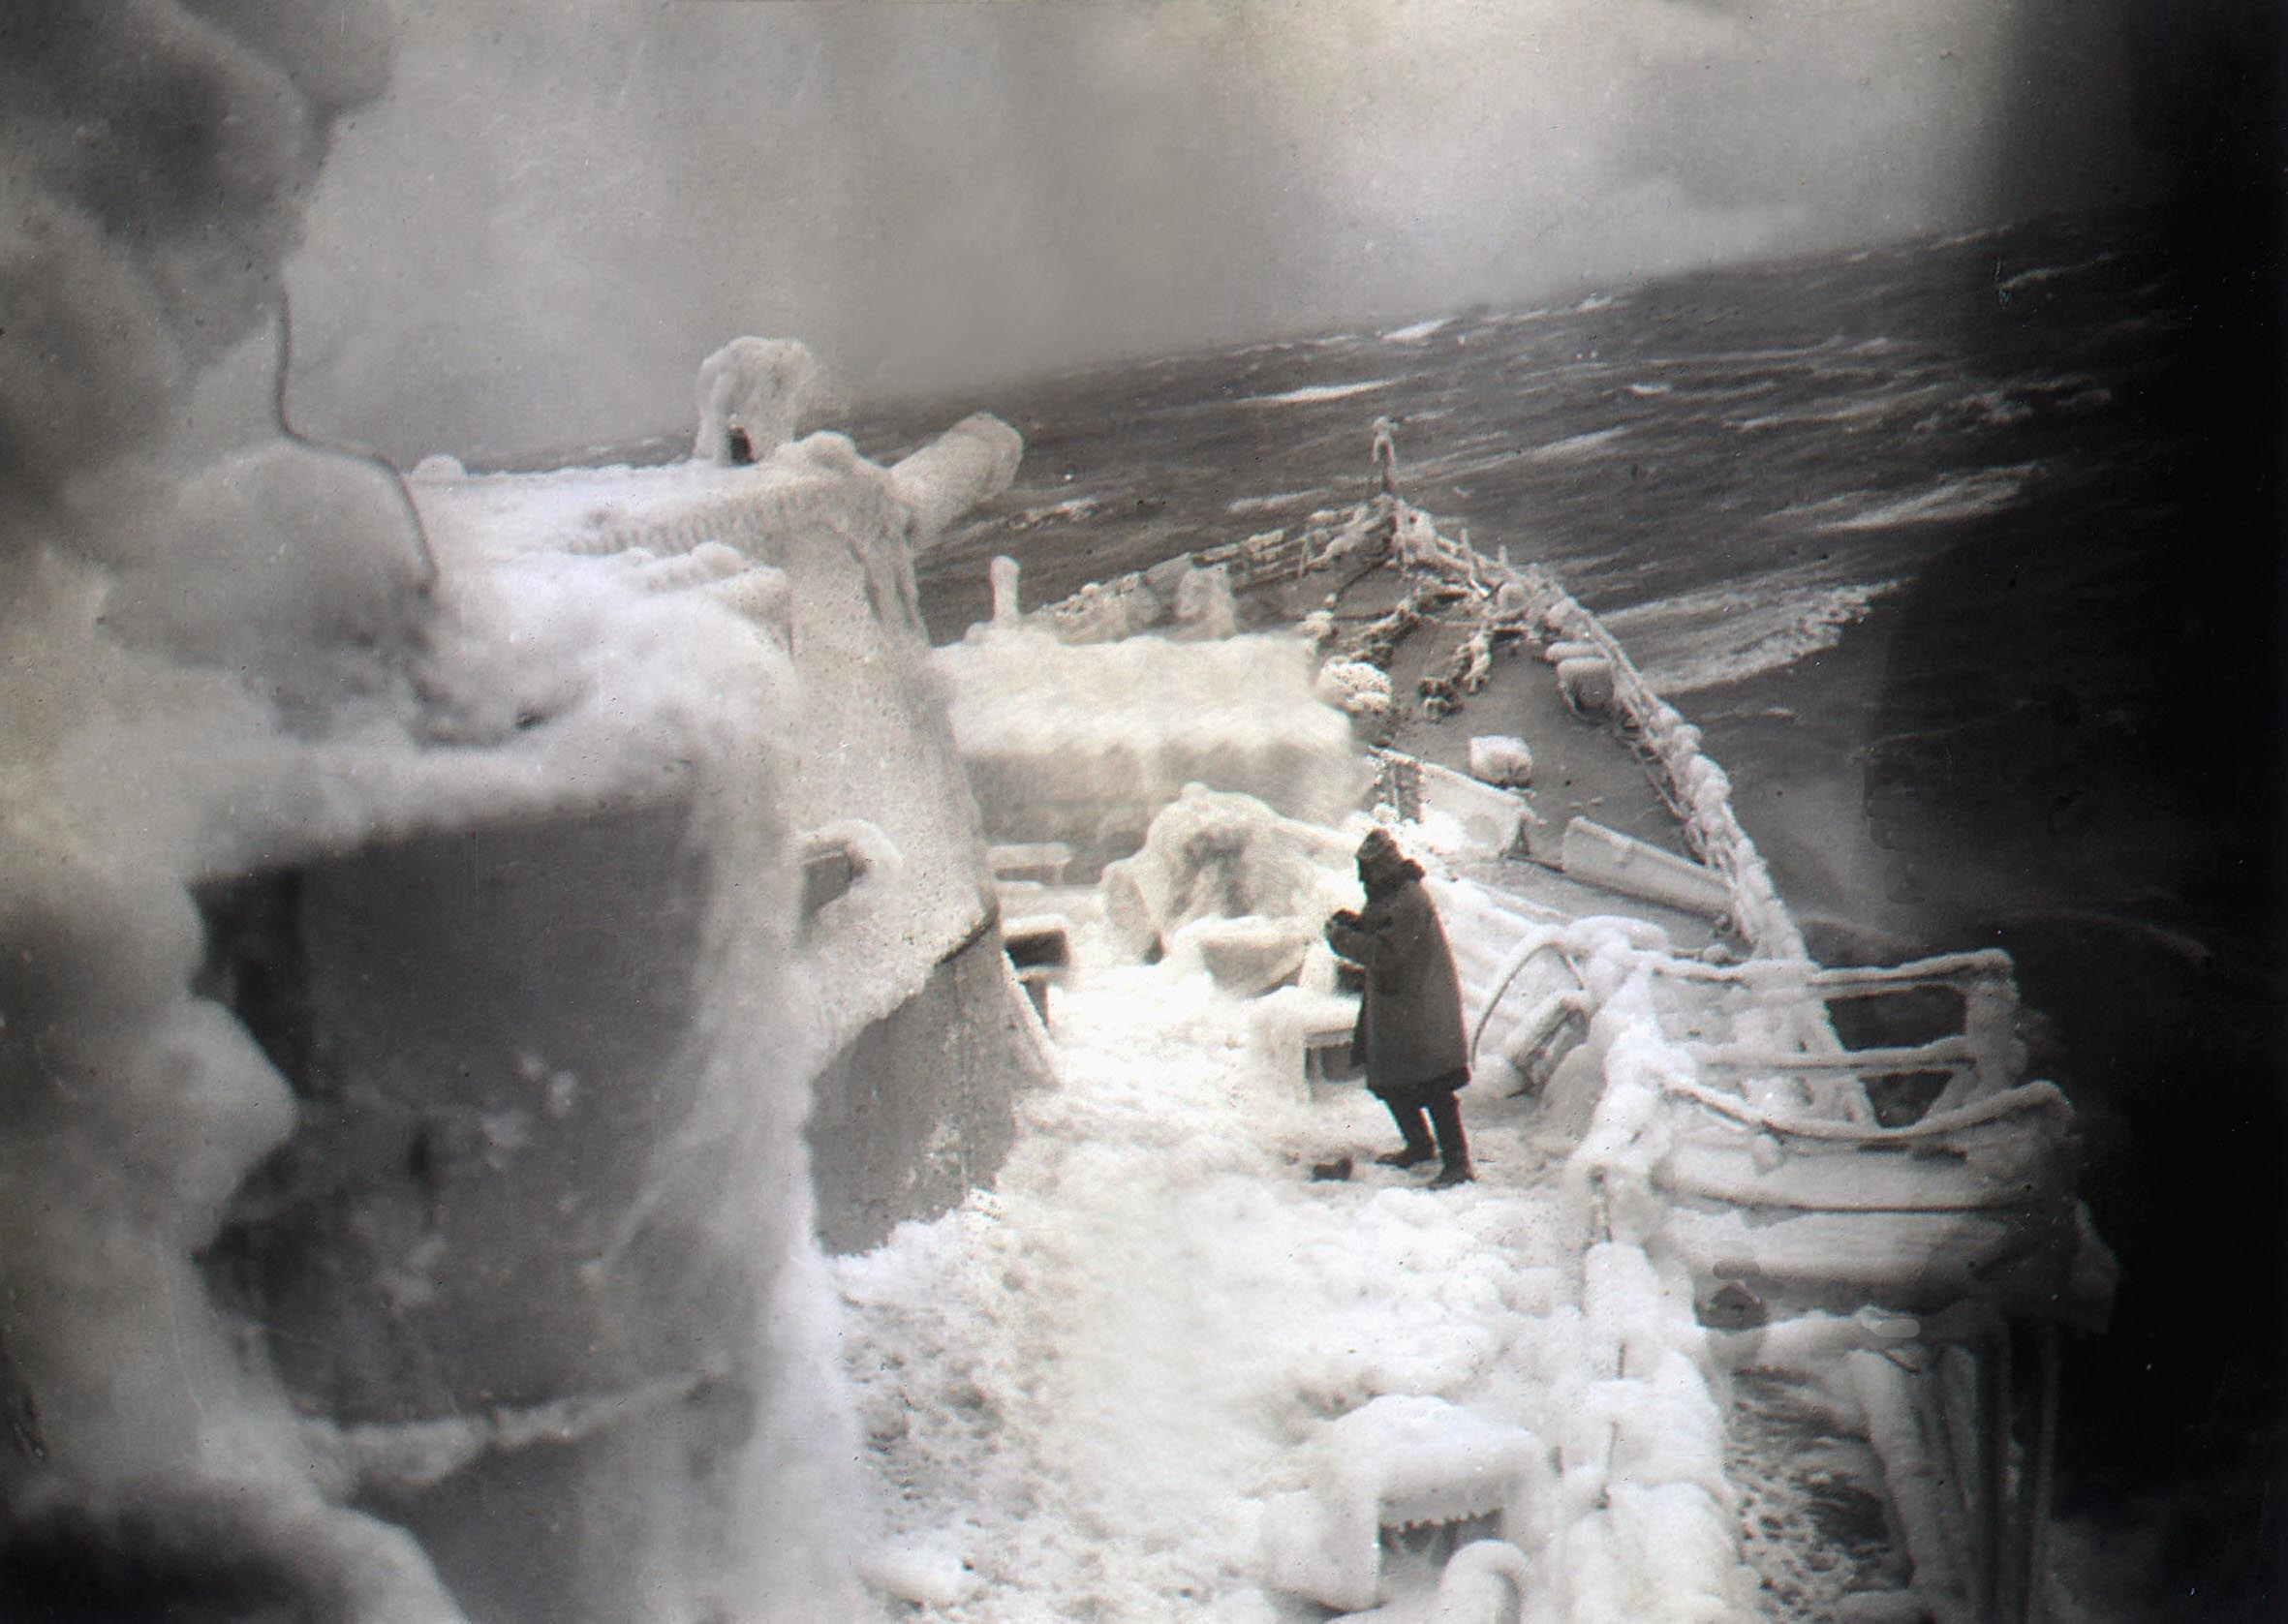 The Russian Arctic Convoy involved ships serving vital trade routes to Russia.